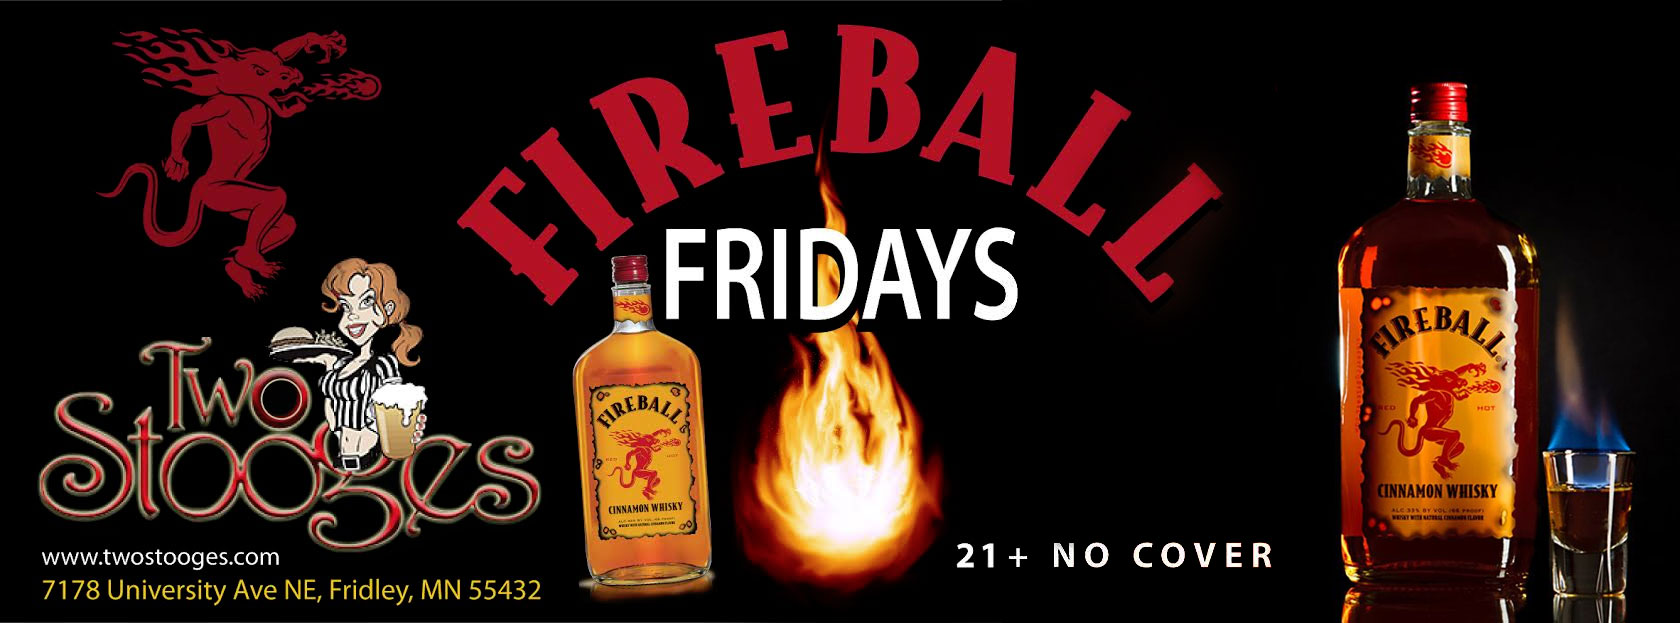 Fireball Fridays